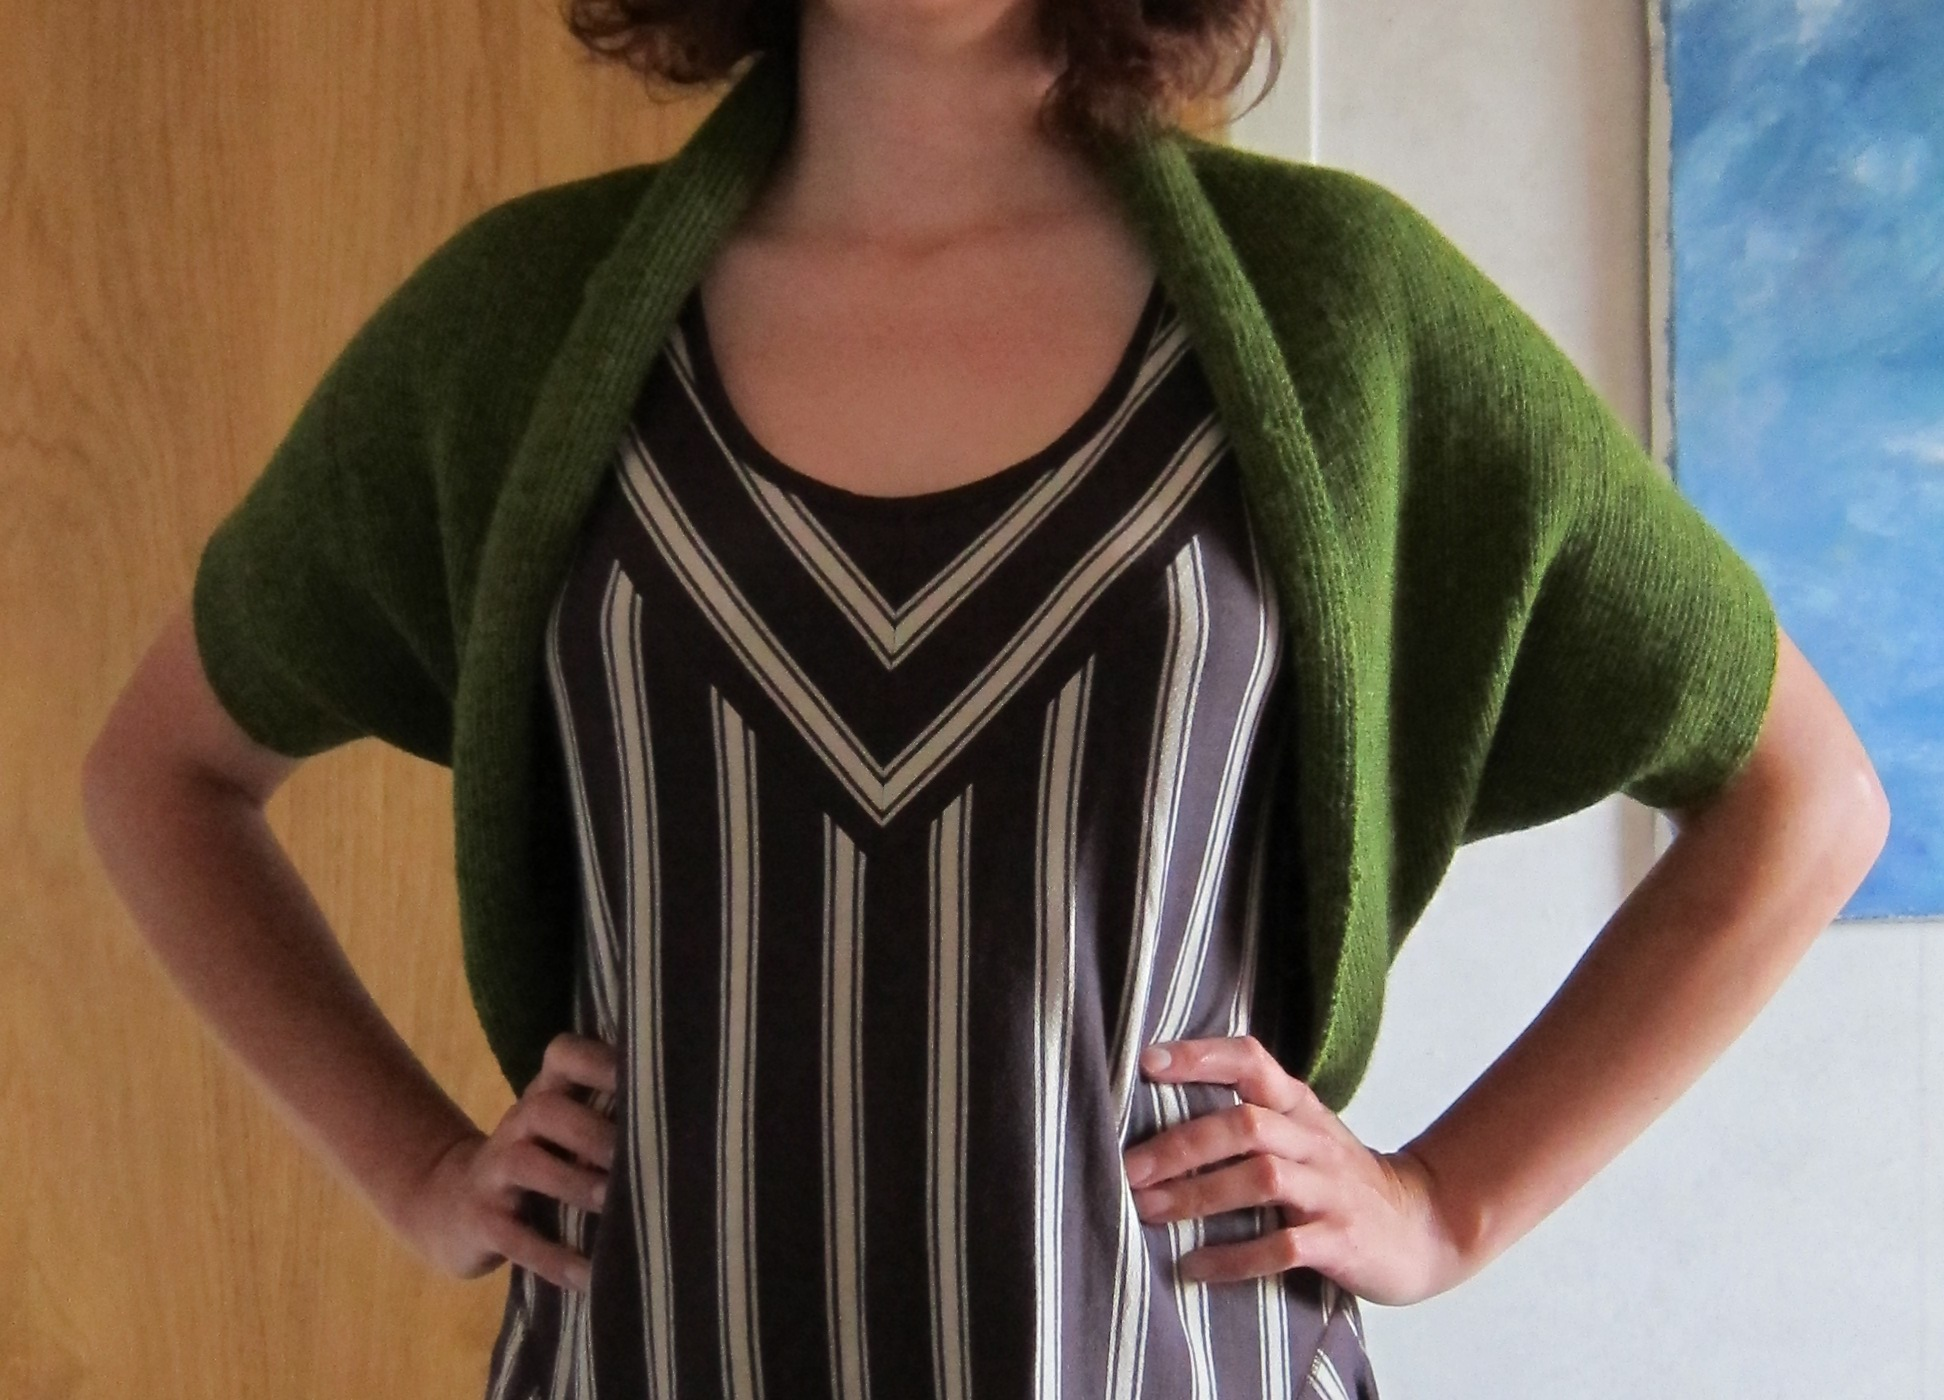 Machine Knitted Shrug Sewing Projects Burdastyle Com